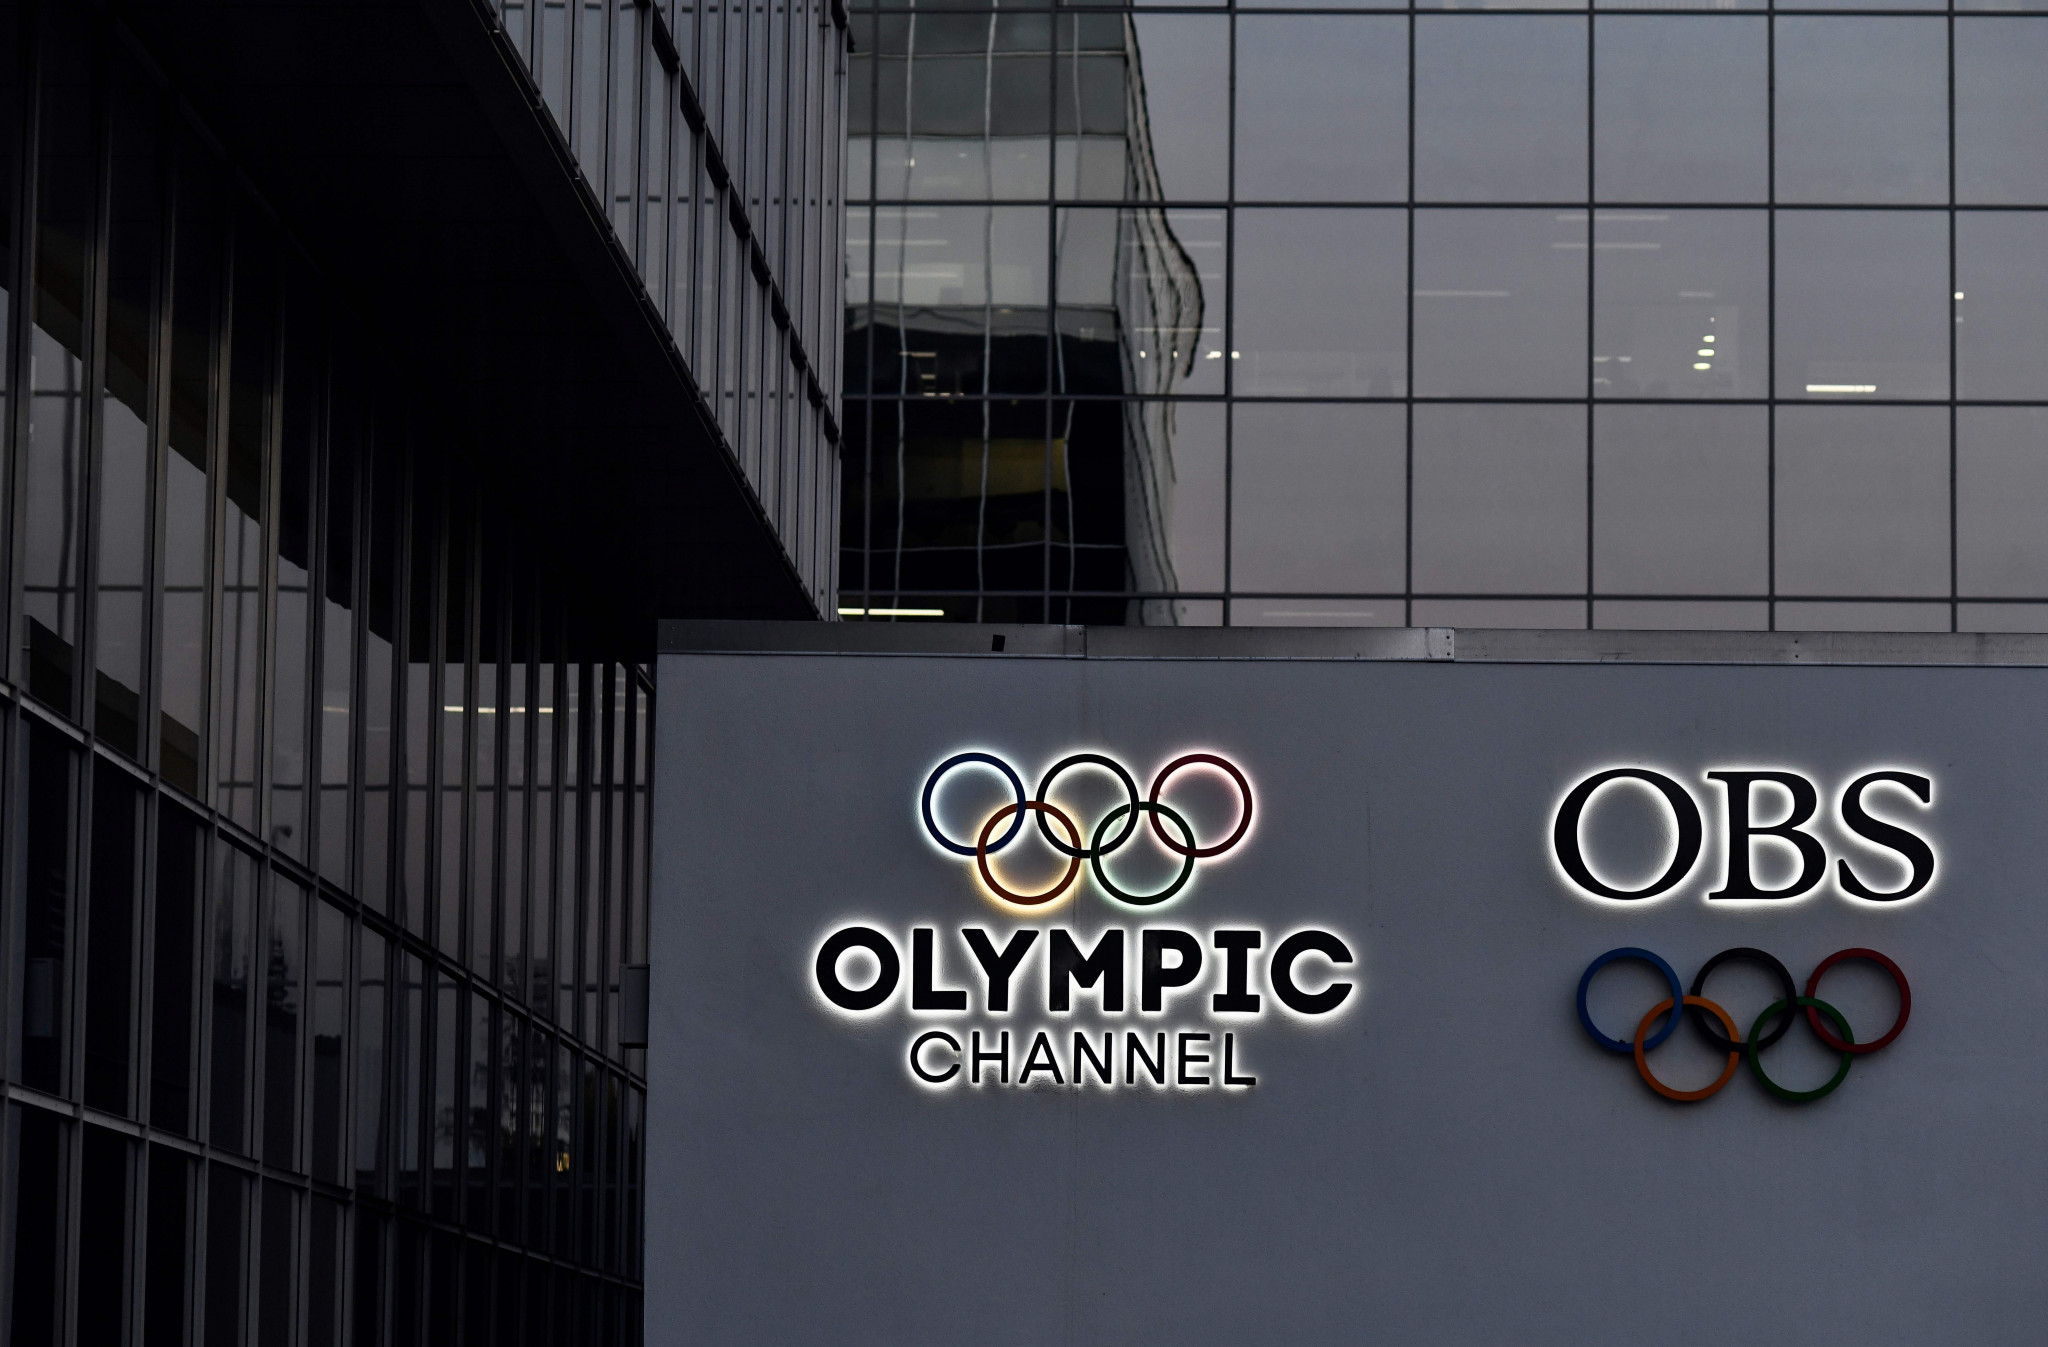 Olympic Channel reveals live streaming schedule for Lausanne 2020